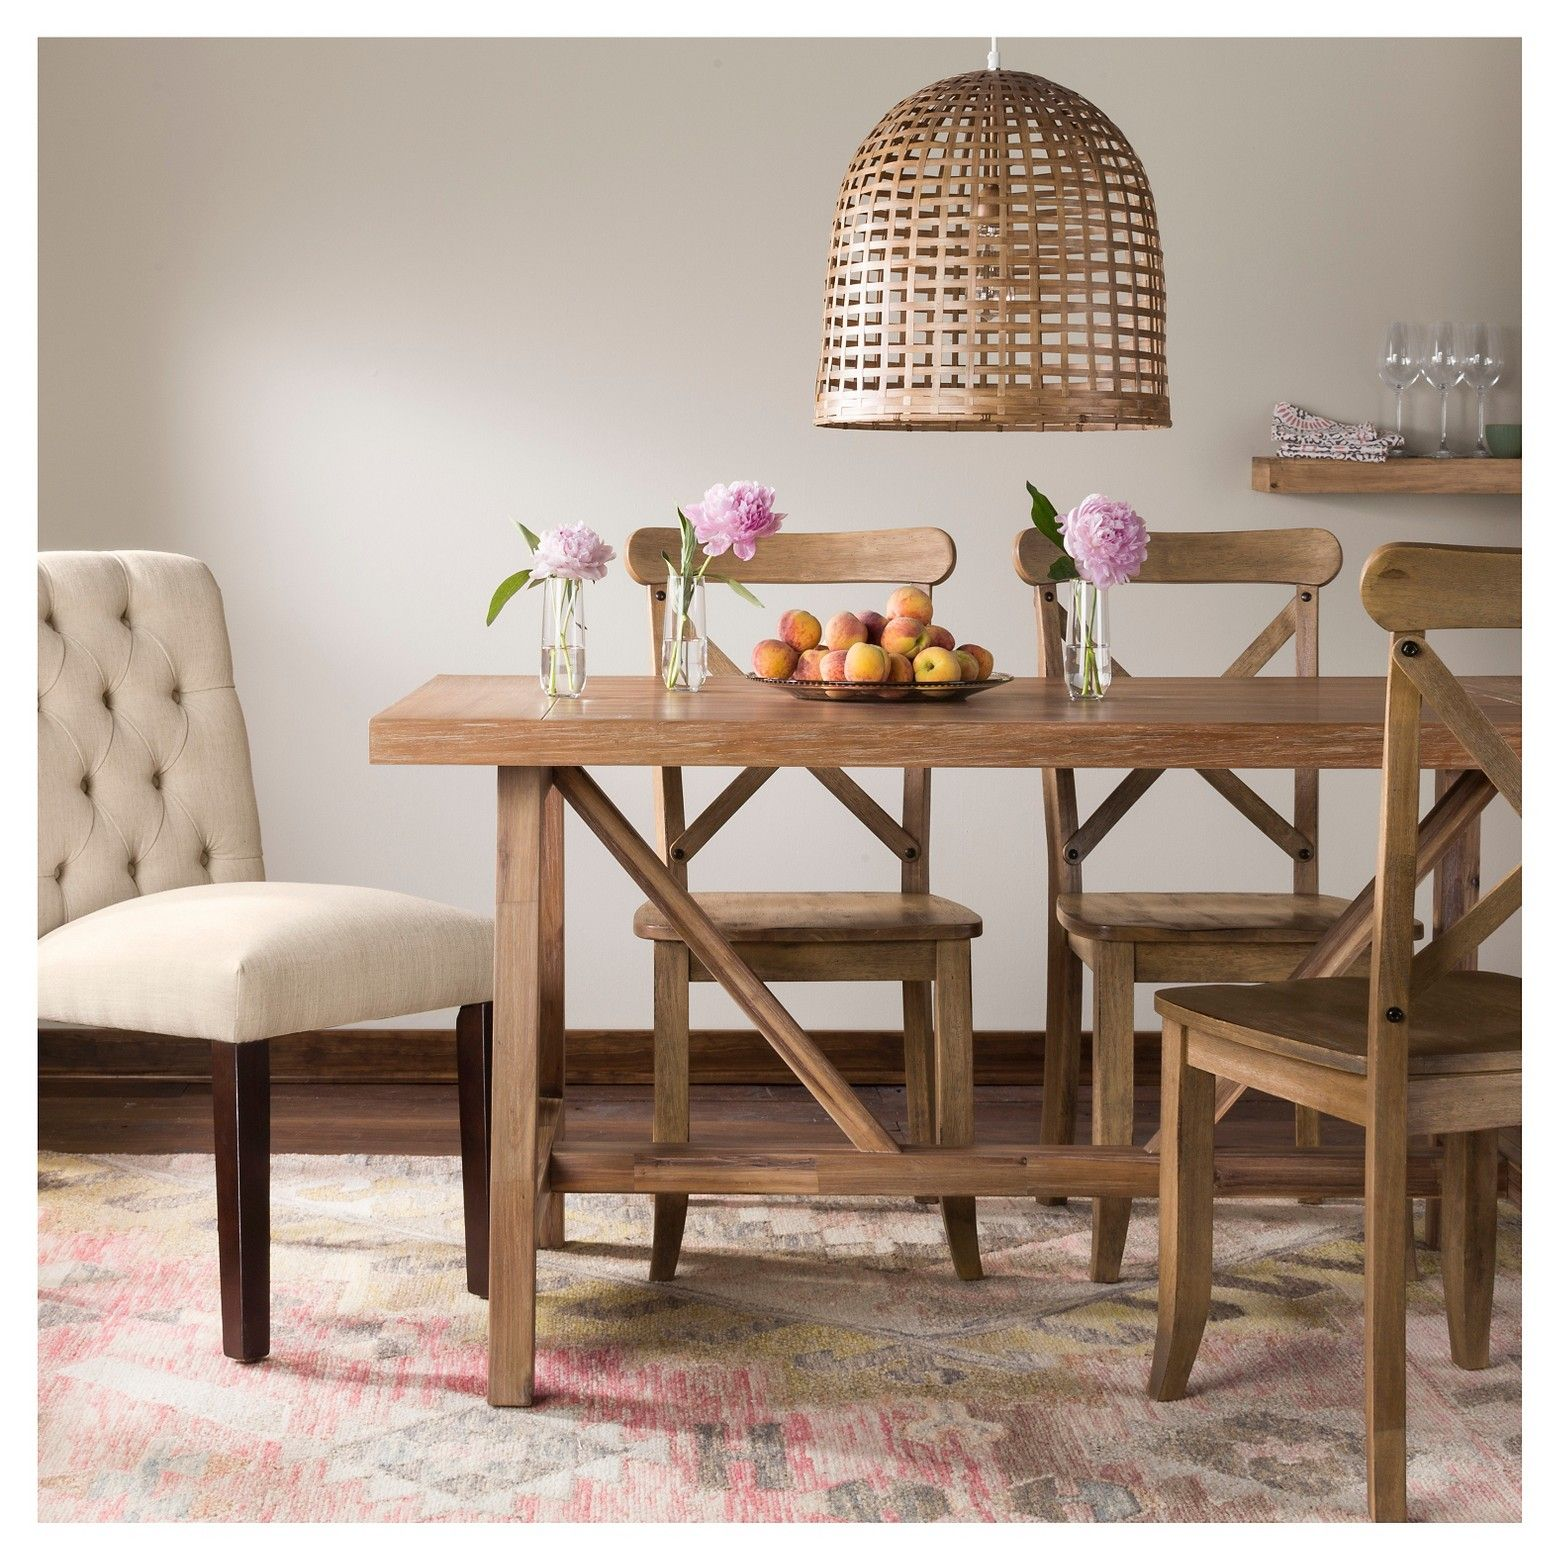 The Wheaton Farmhouse Trestle Dining Table From Threshold Is A Gorgeous Creation In Wood That Will